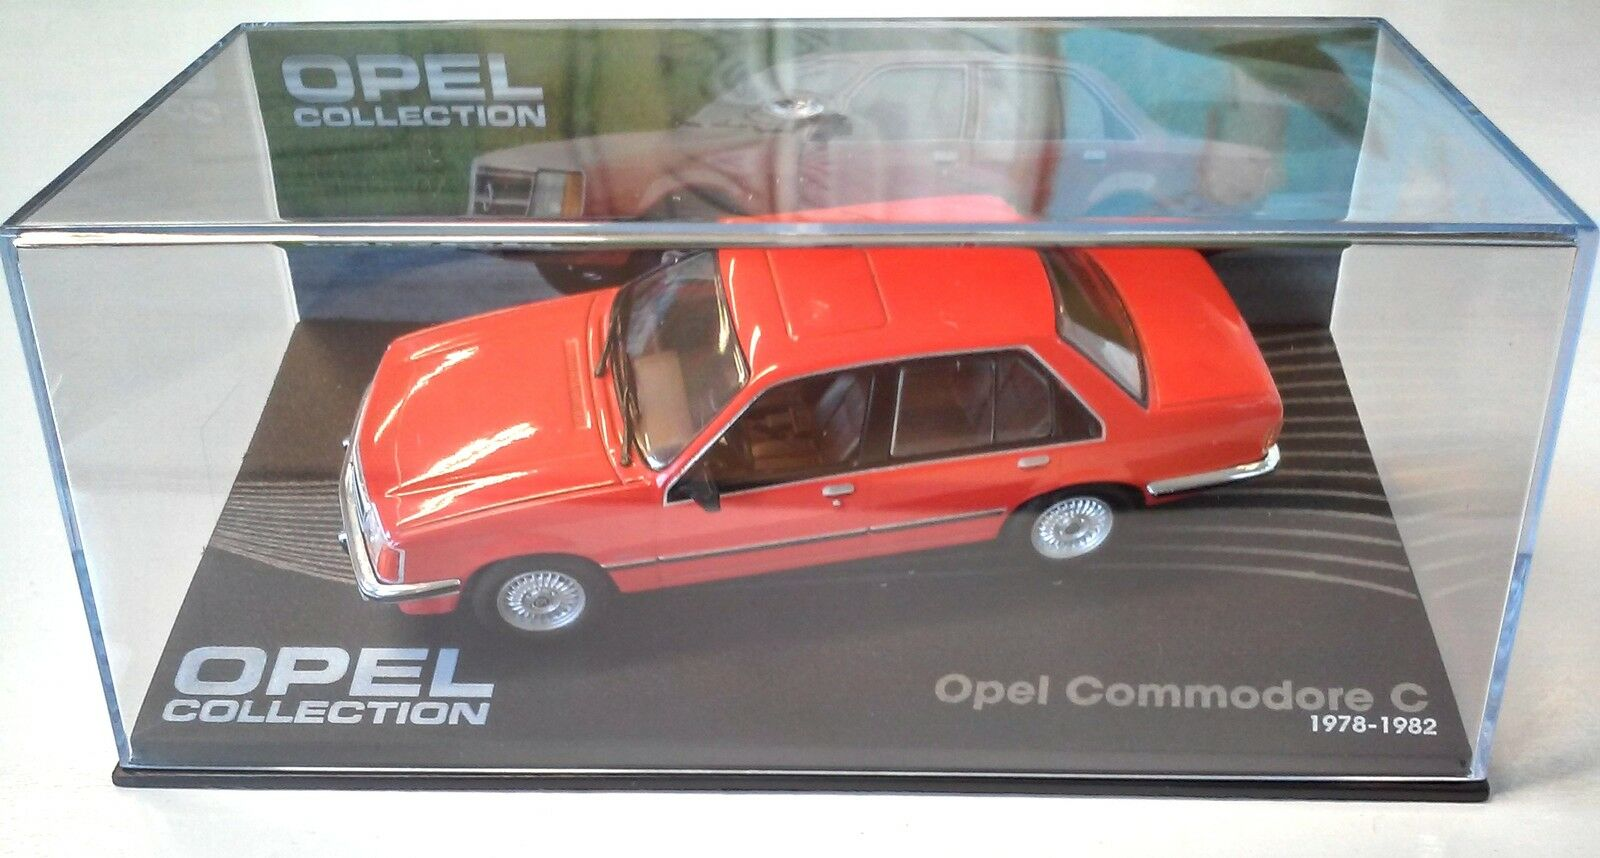 OPEL COMMODORE C 1978-1982 - VOITURE MINIATURE COLLECTION - IXO 1 43 CAR AUTO 49